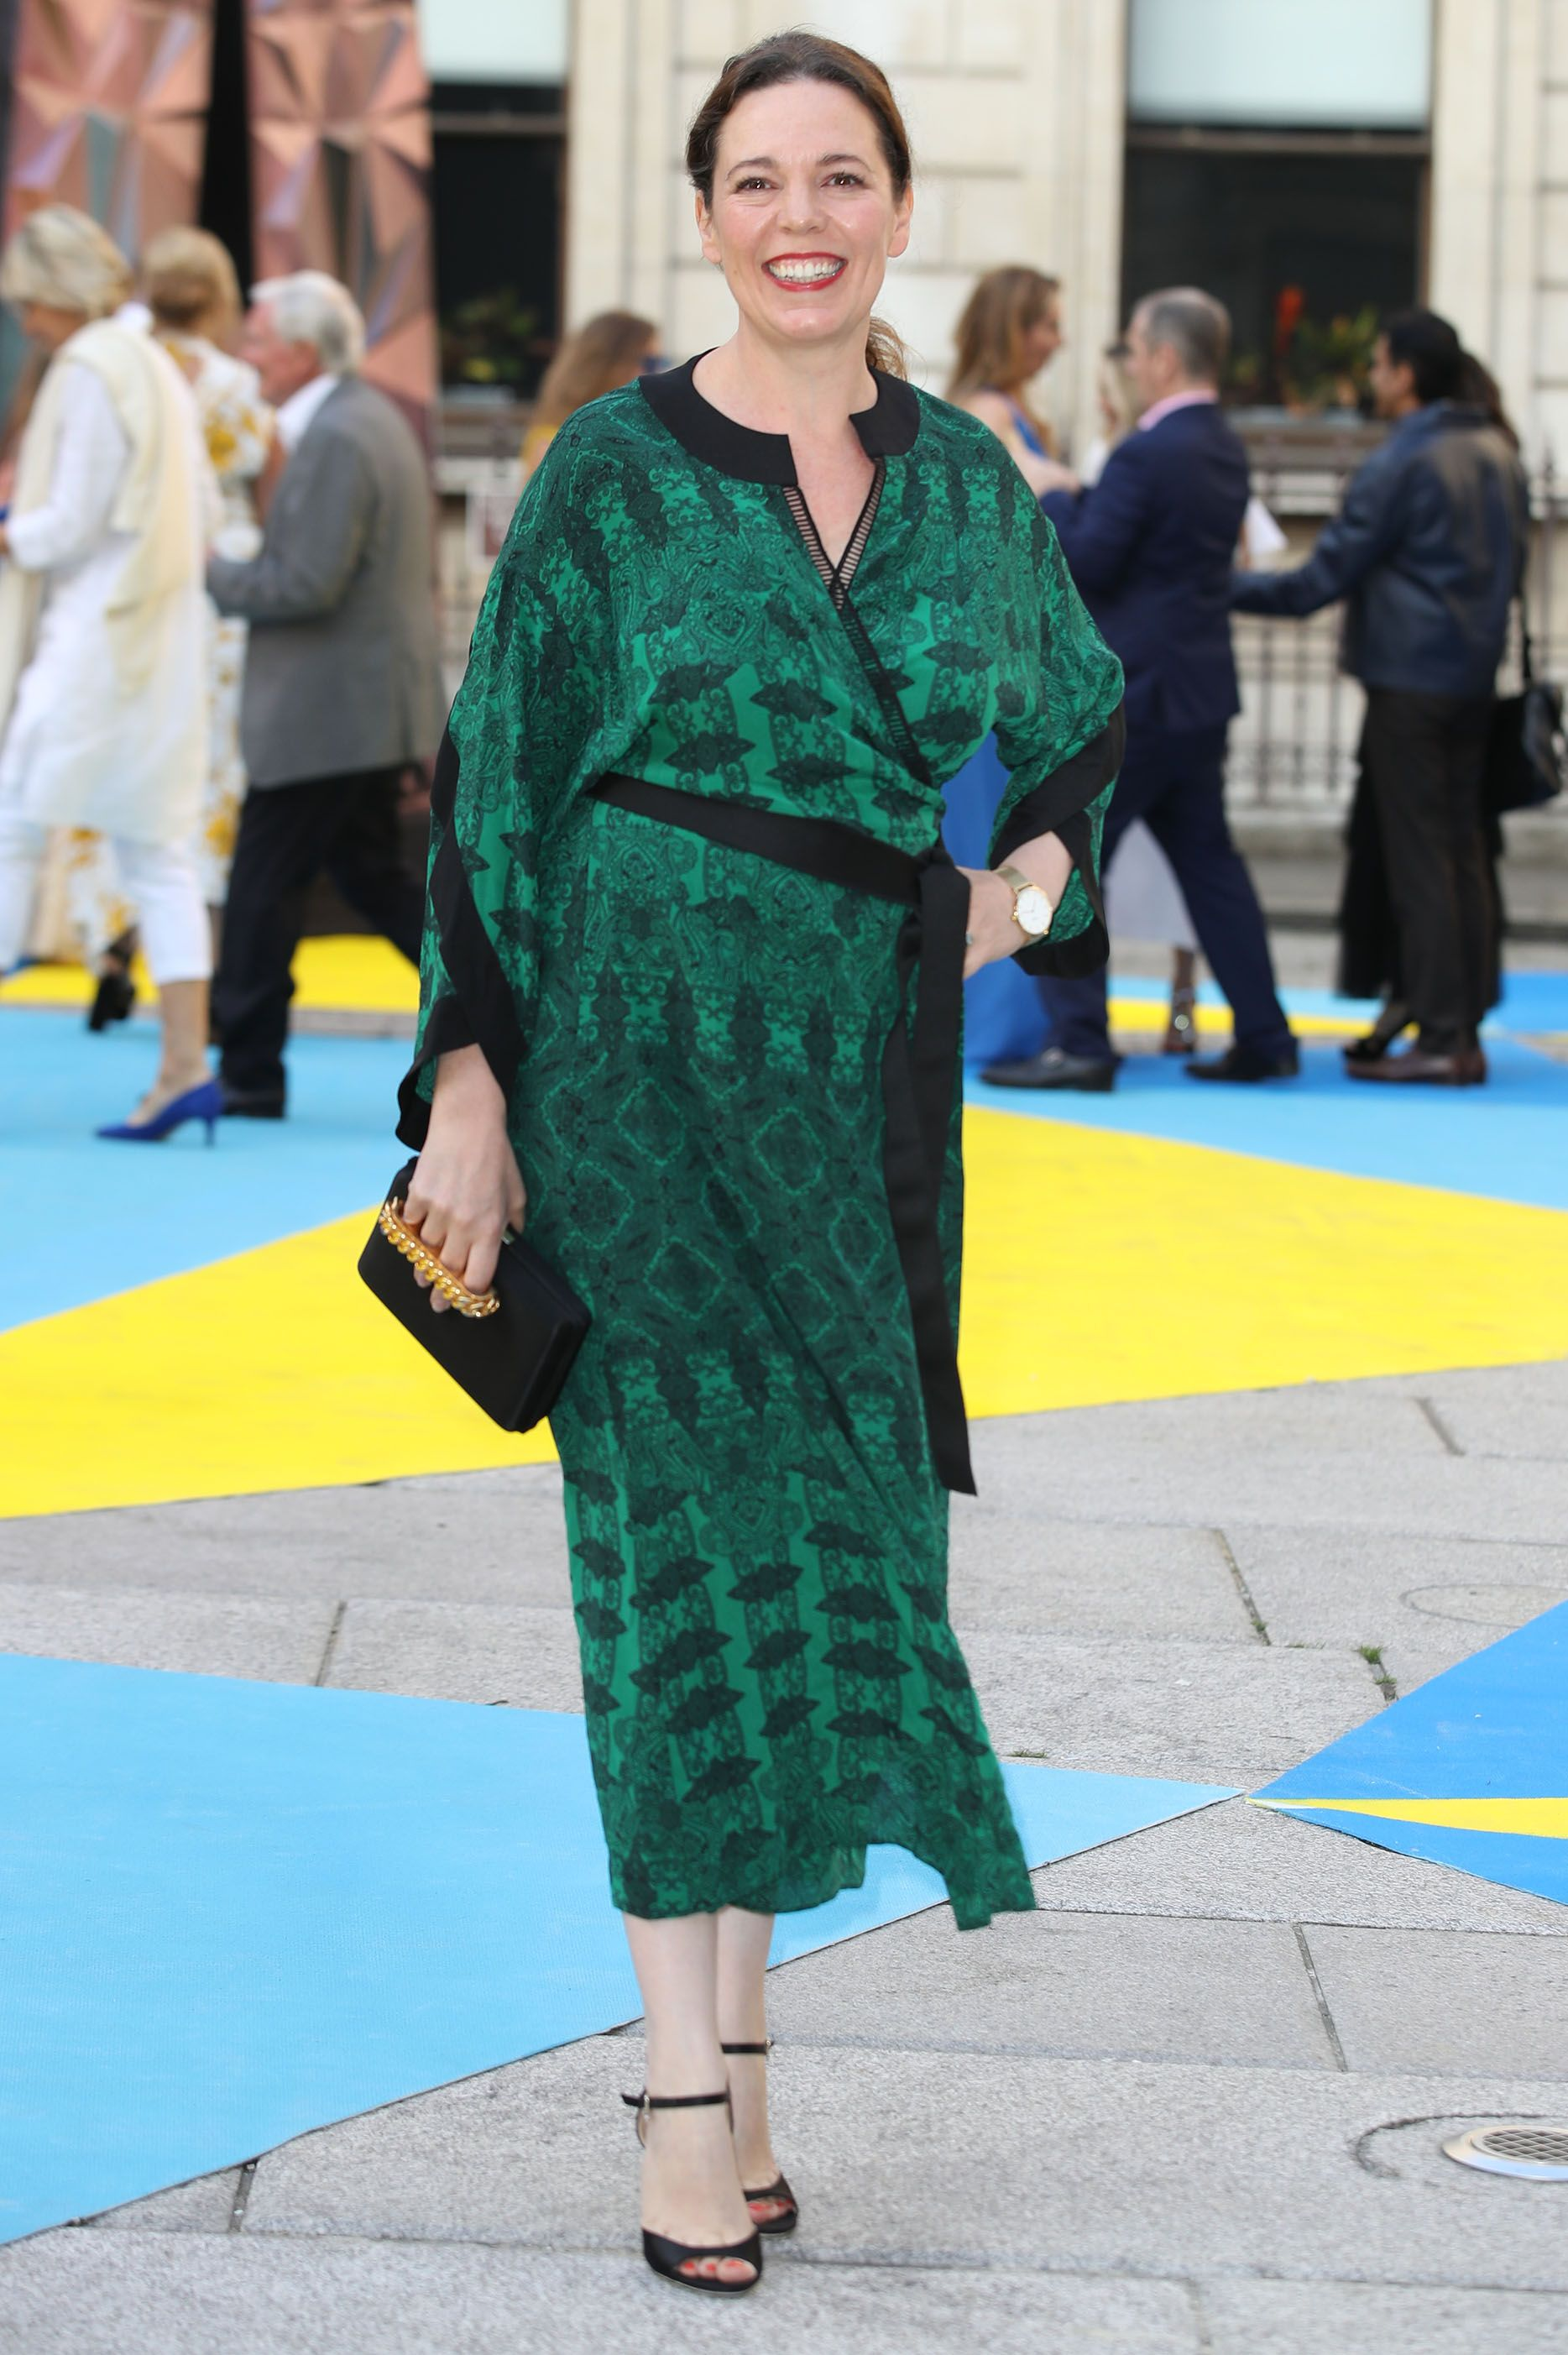 The actress paired a green printed wrap-dress with black heels and a black and gold-chained clutch for the Royal Academy of Arts Summer Exhibition Preview Party.